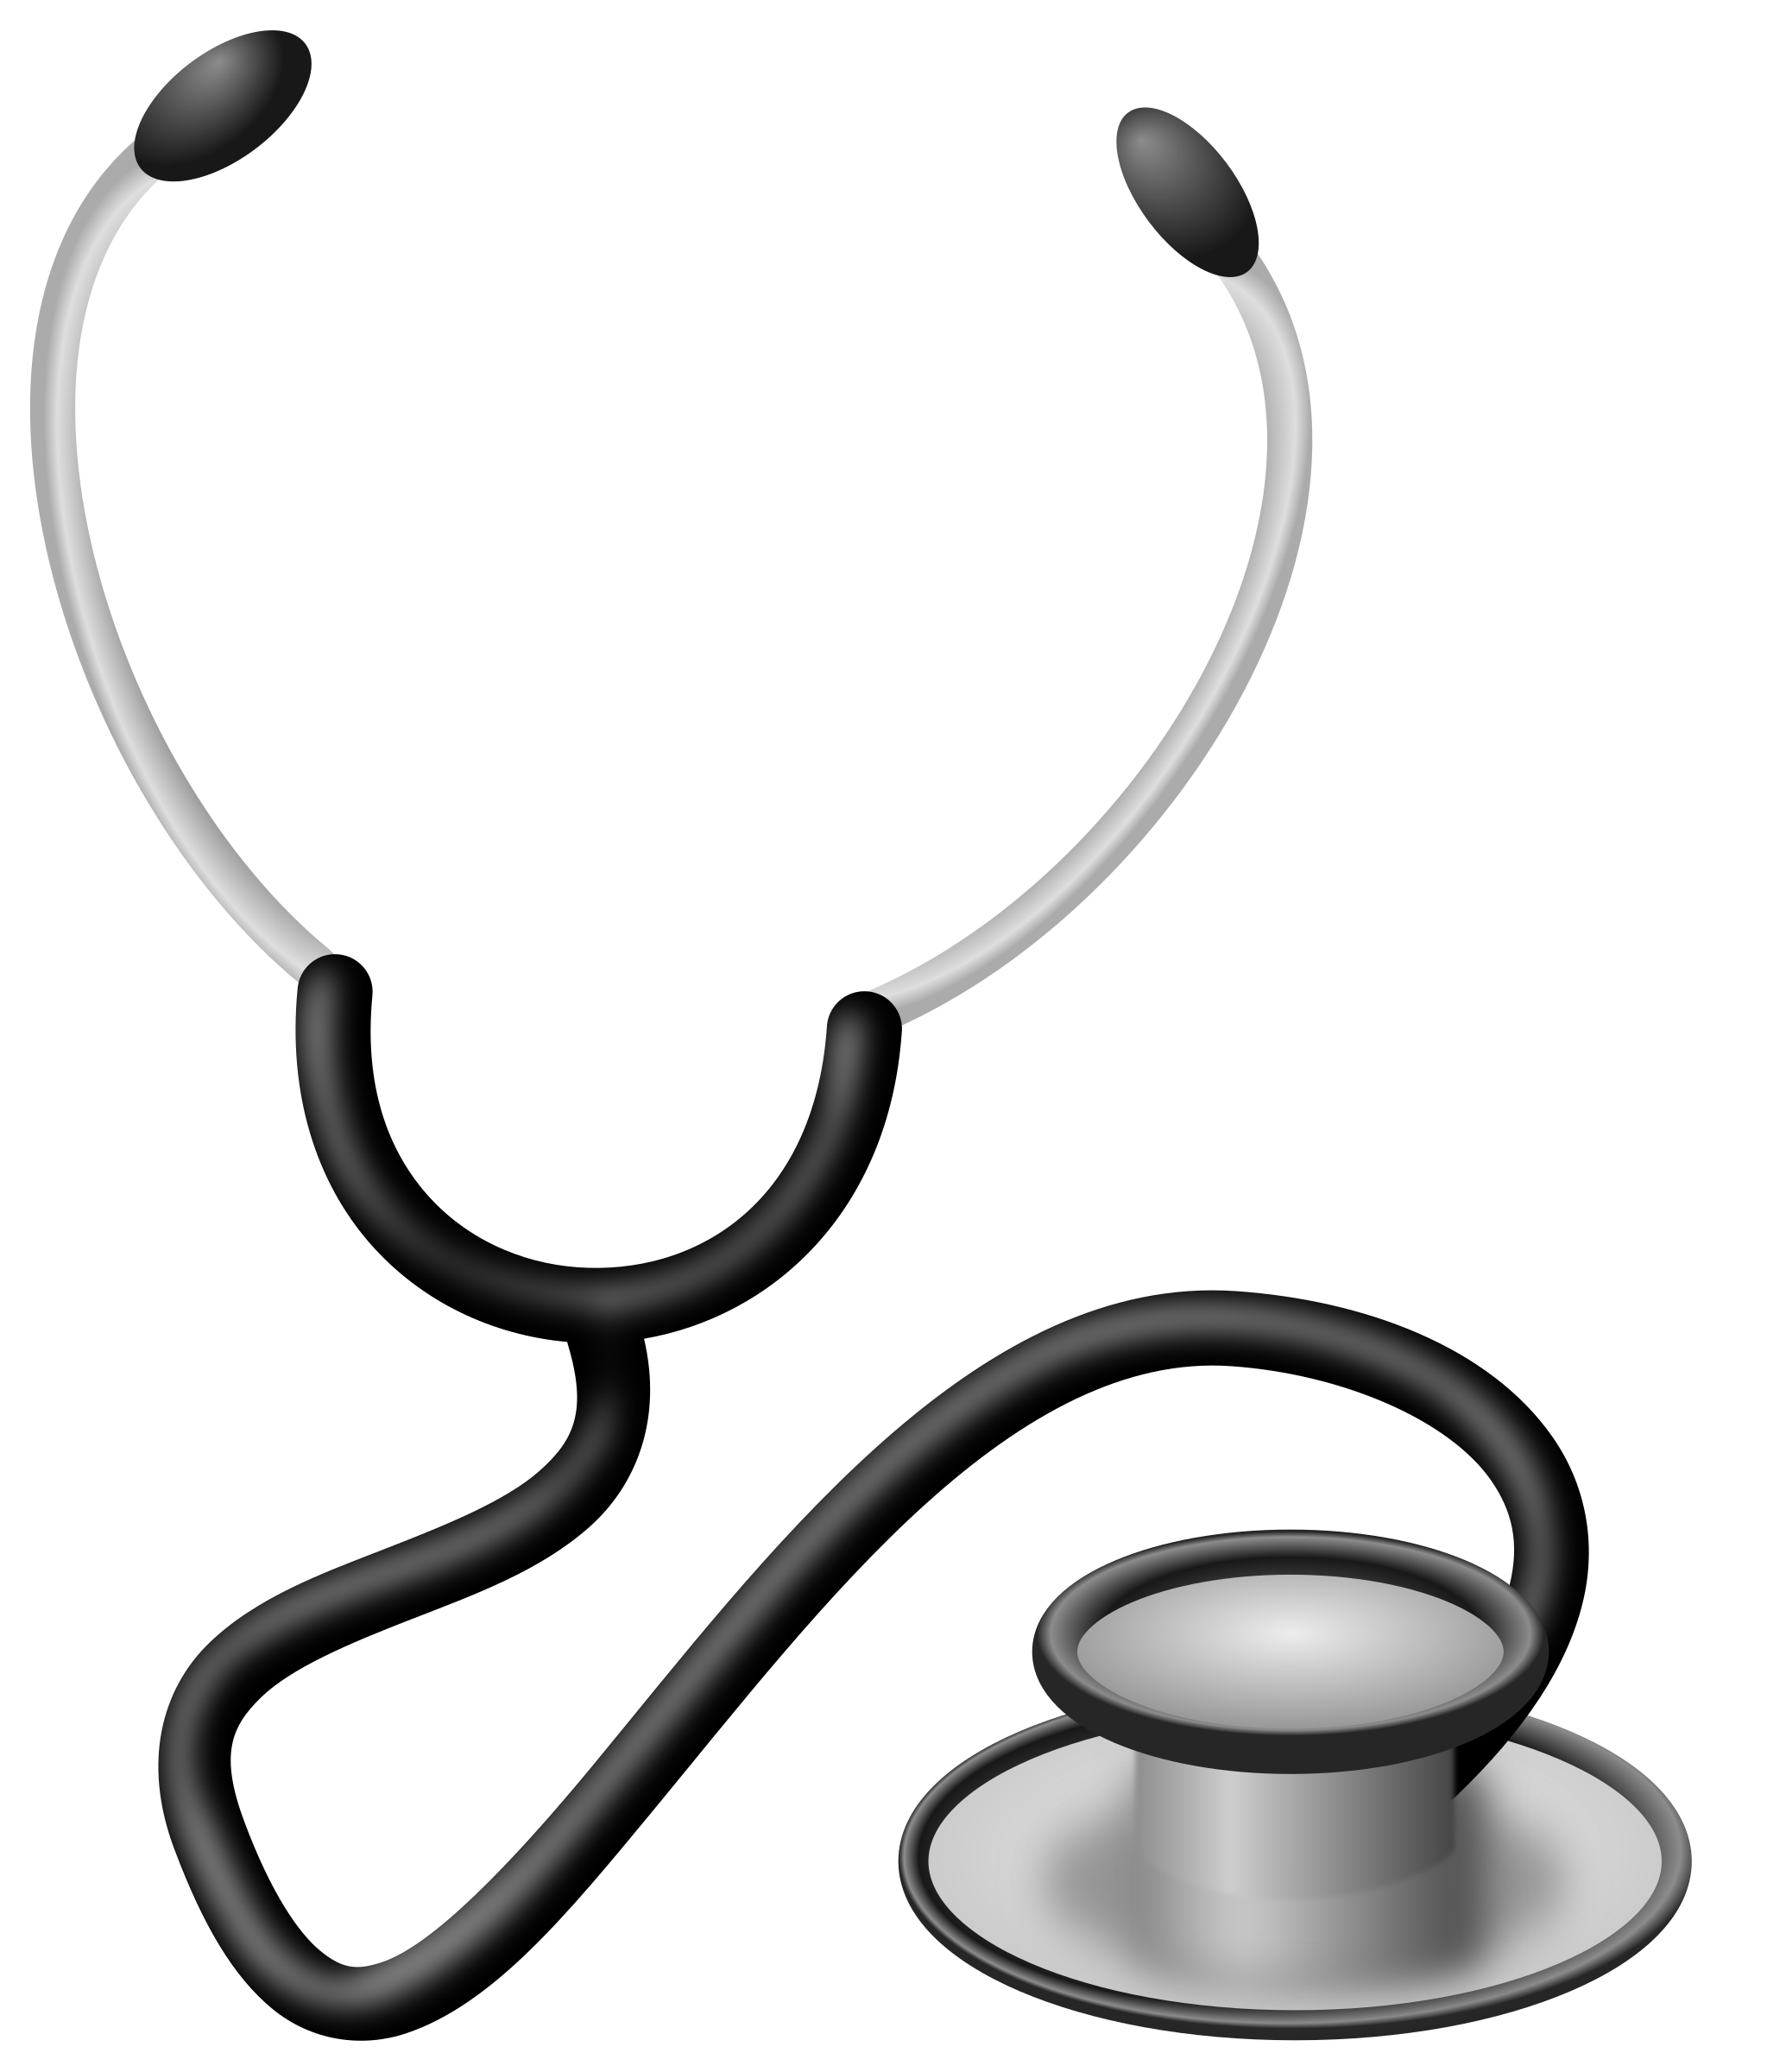 Stethoscope clipart png. Big image